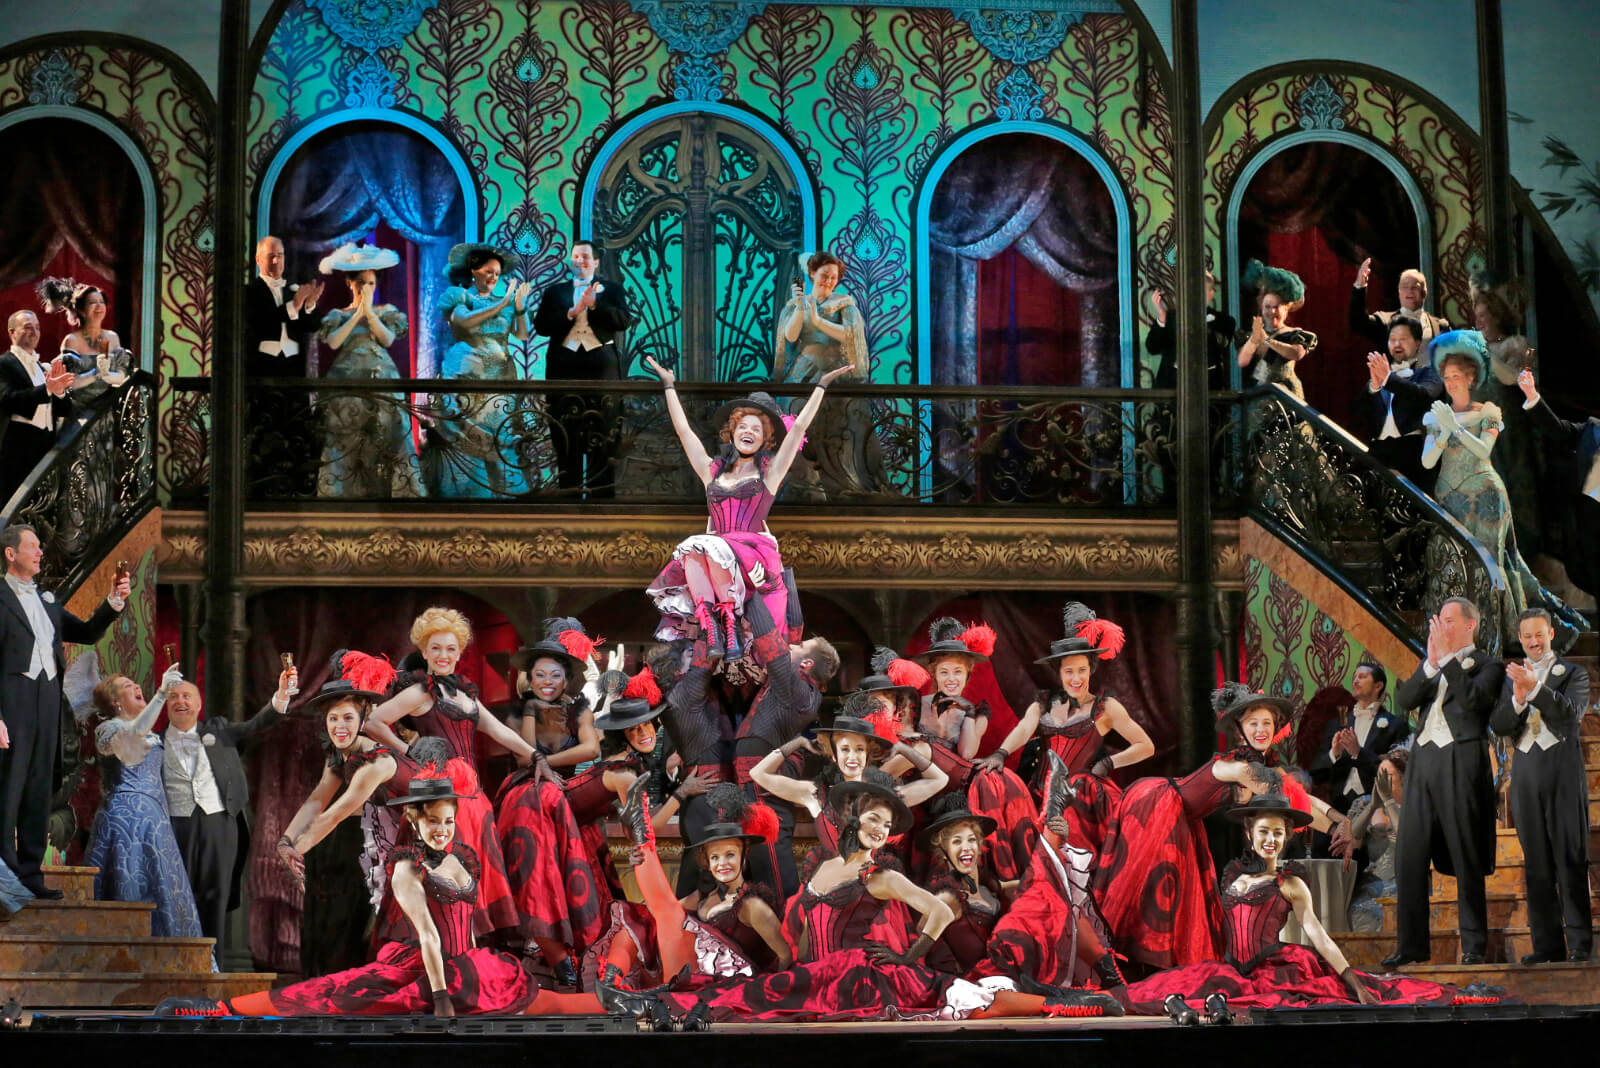 Valencienne (Kelli O'Hara) dances with the Grisettes at Chez Maxime. Kelli is dressed in a Magenta Can Can dress and the Grisettes are dressed in Red Can Can dresses.